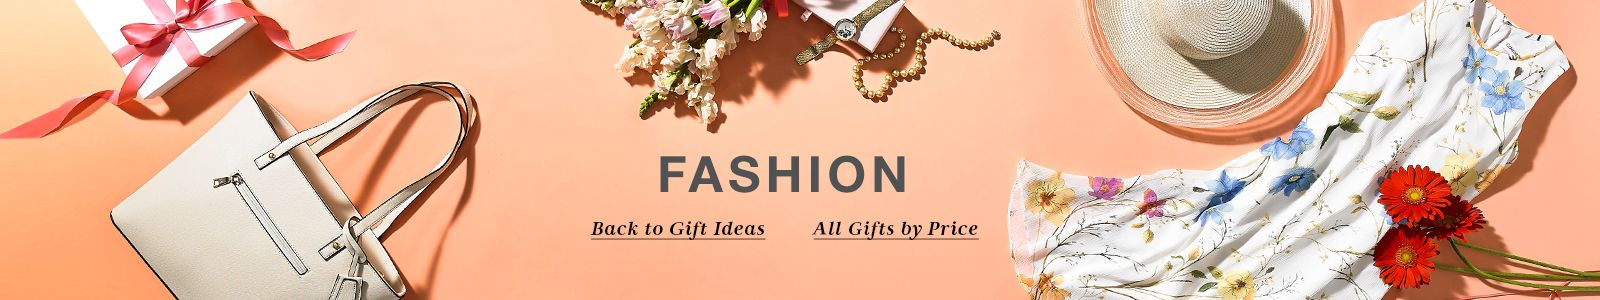 Fashion, Back to Gift Ideas, All Gifts by Price